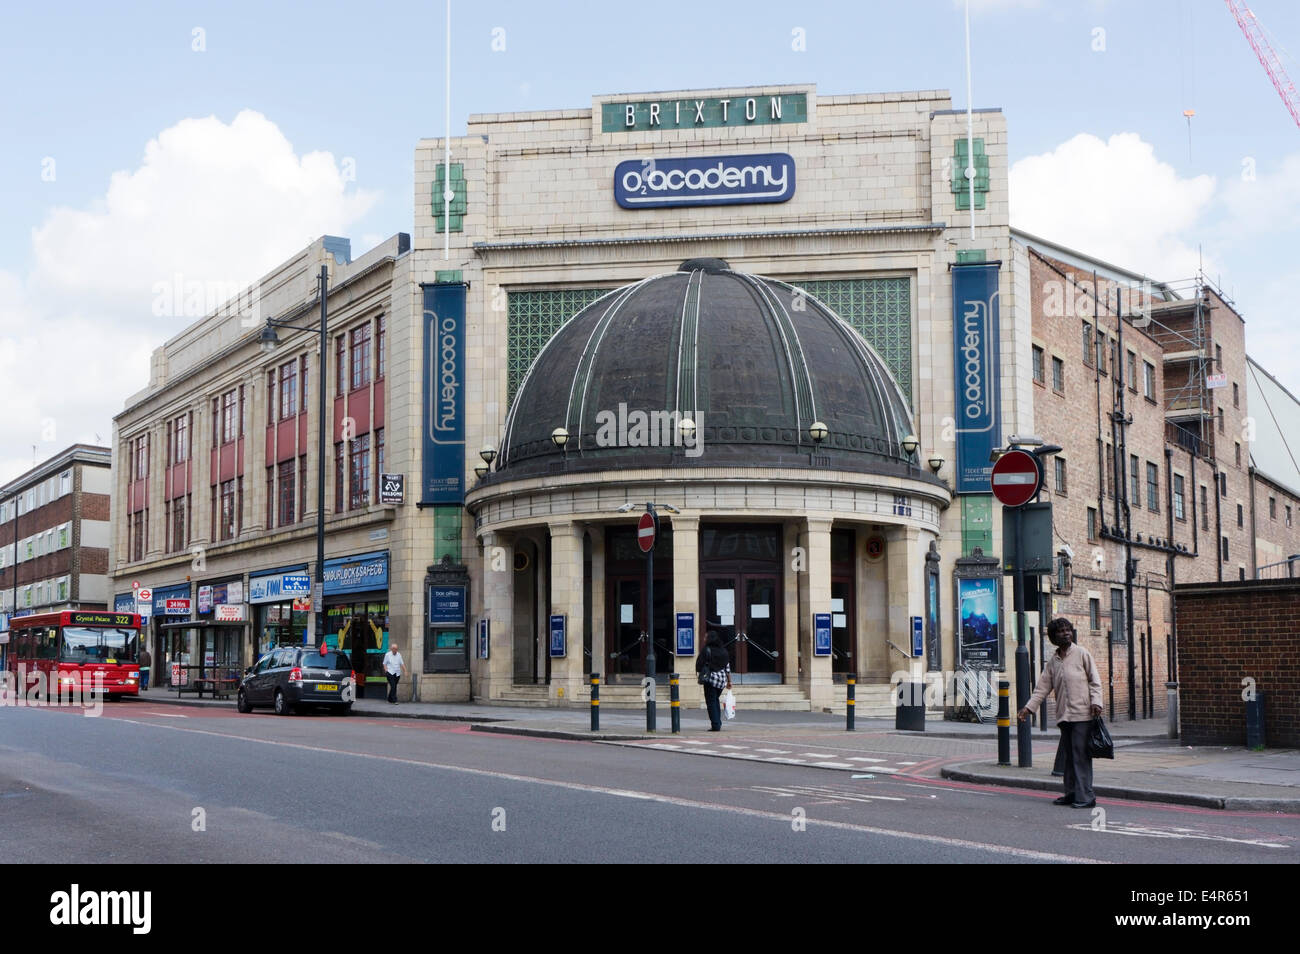 The Brixton O2 Academy music venue in Stockwell Road, south London. - Stock Image